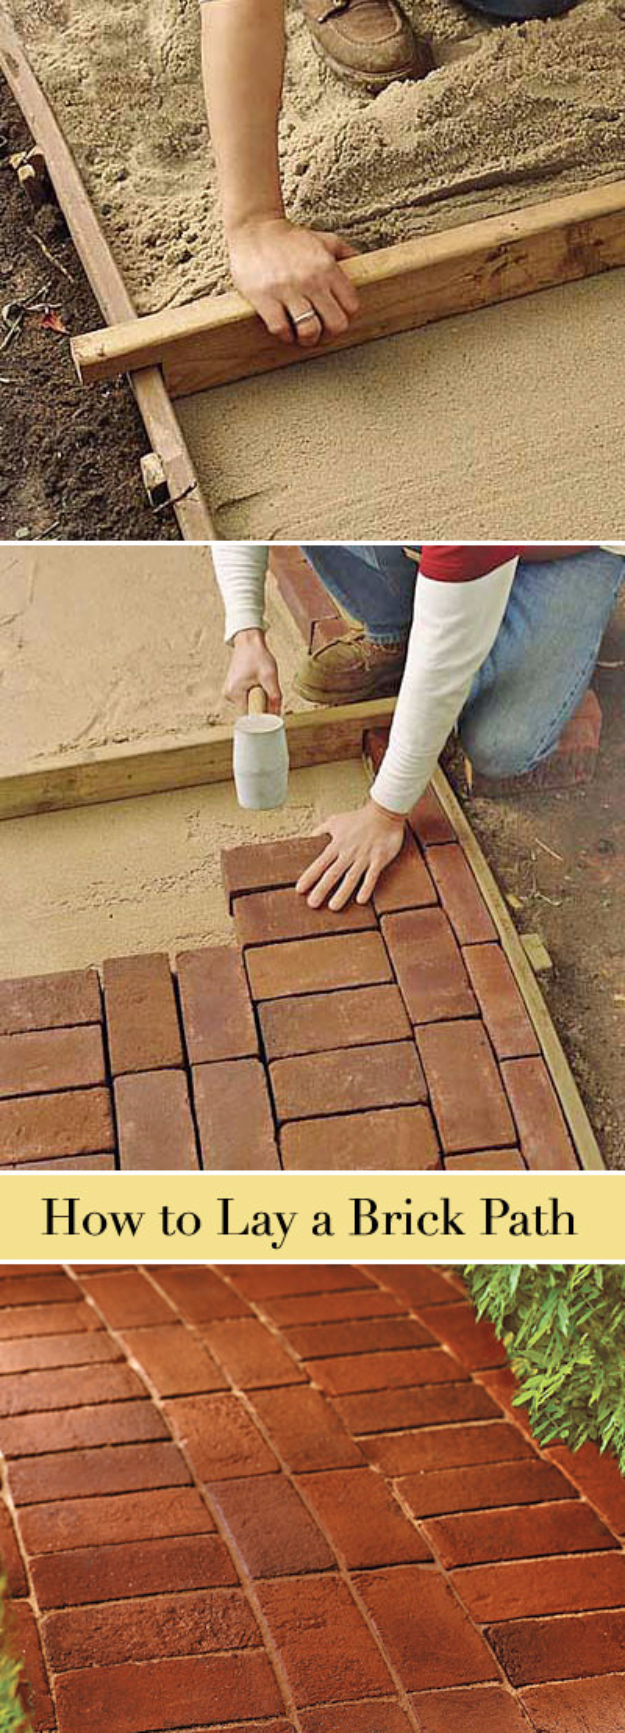 42 diy ideas to increase curb appeal for Diy brick projects